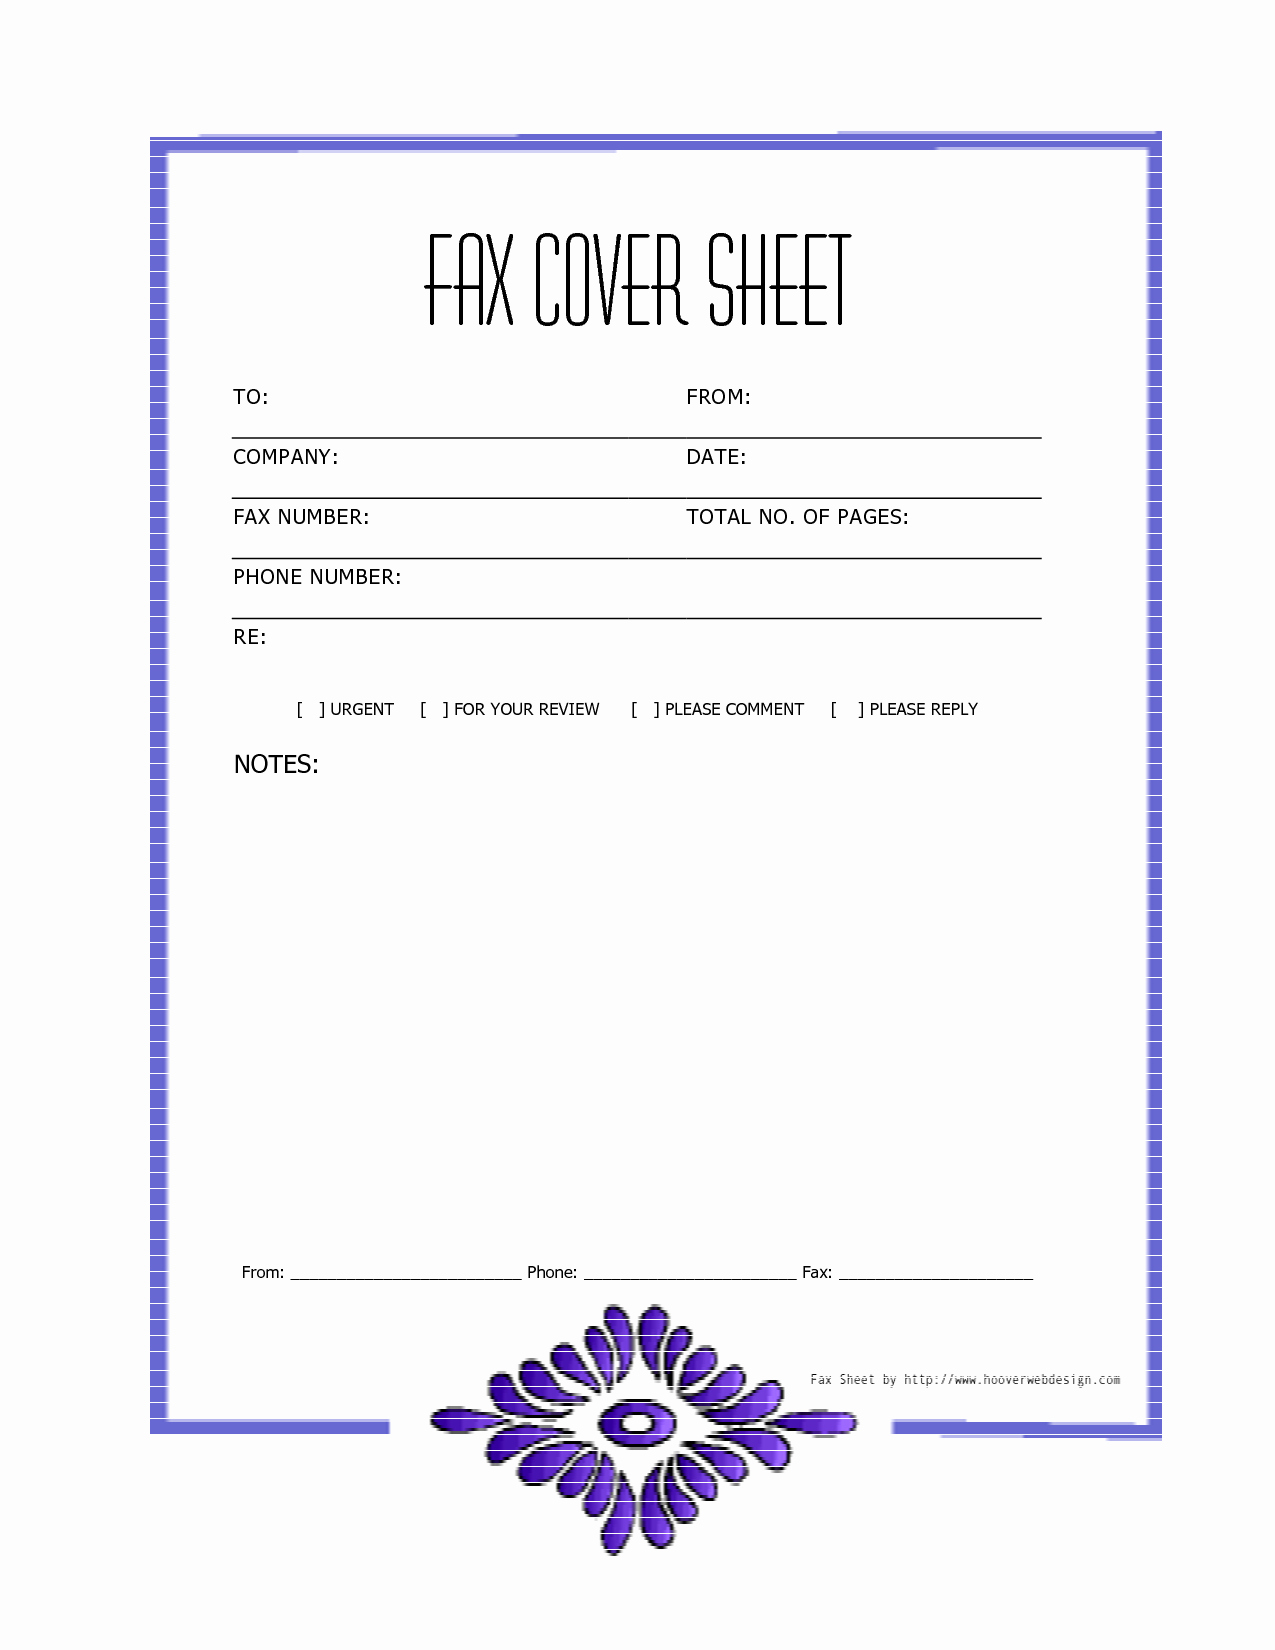 Print Fax Cover Sheet Elegant Free Downloads Fax Covers Sheets